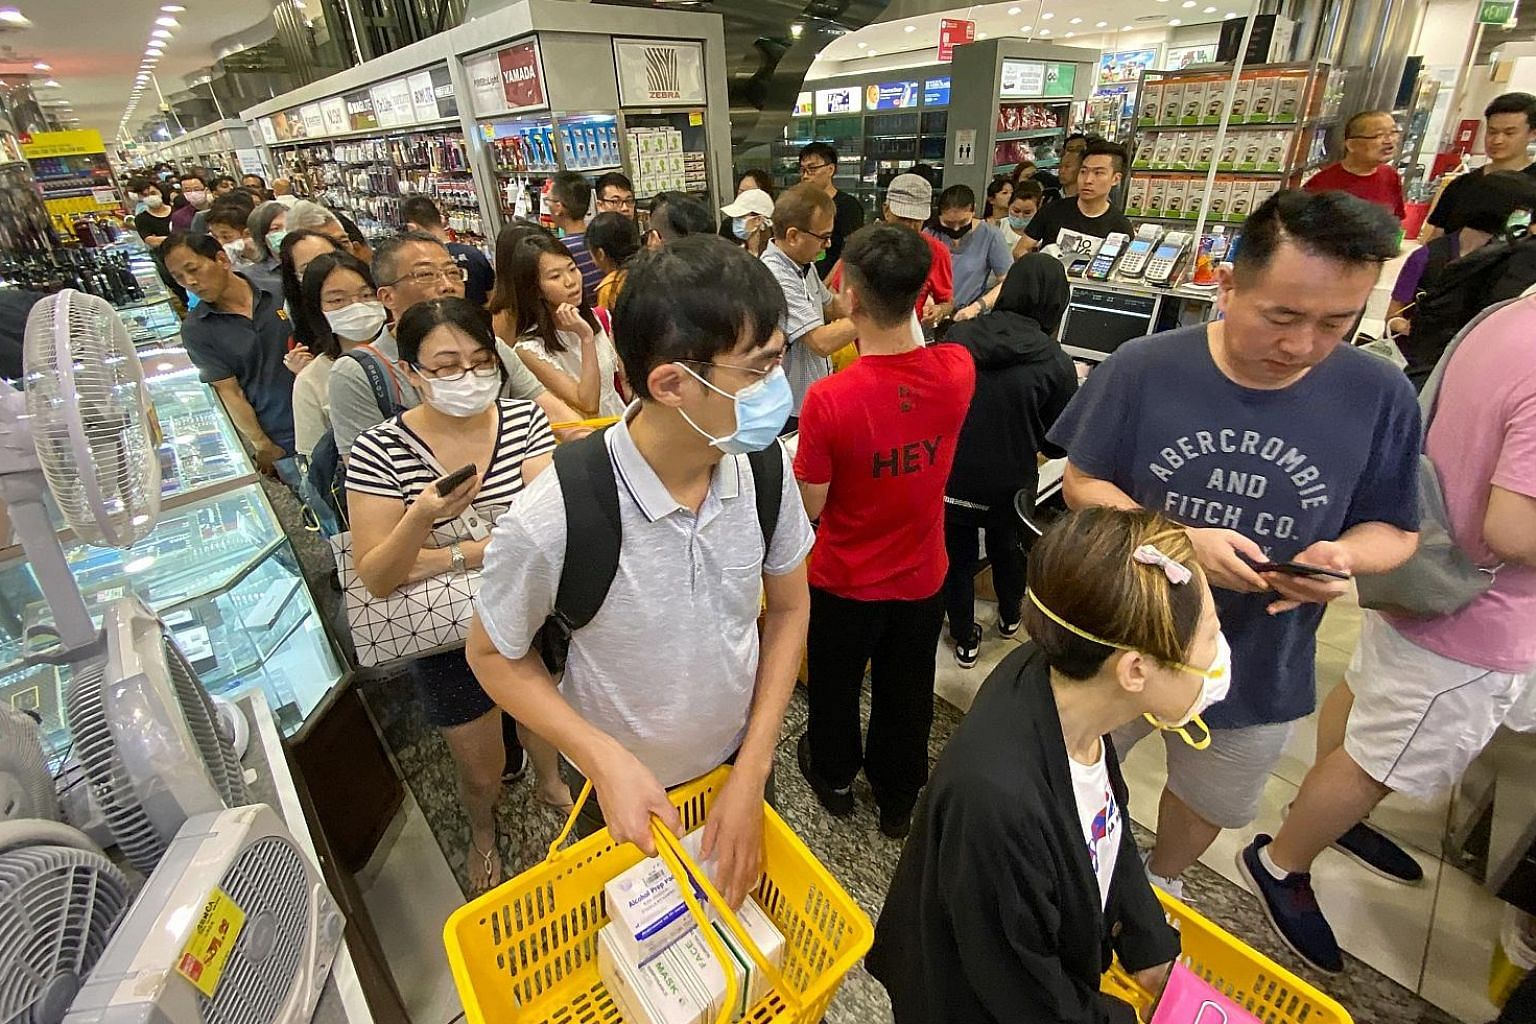 People queueing to buy boxes of masks at Mustafa Centre yesterday. Senior Minister of State for Health Lam Pin Min said there are enough masks if people use them sensibly.